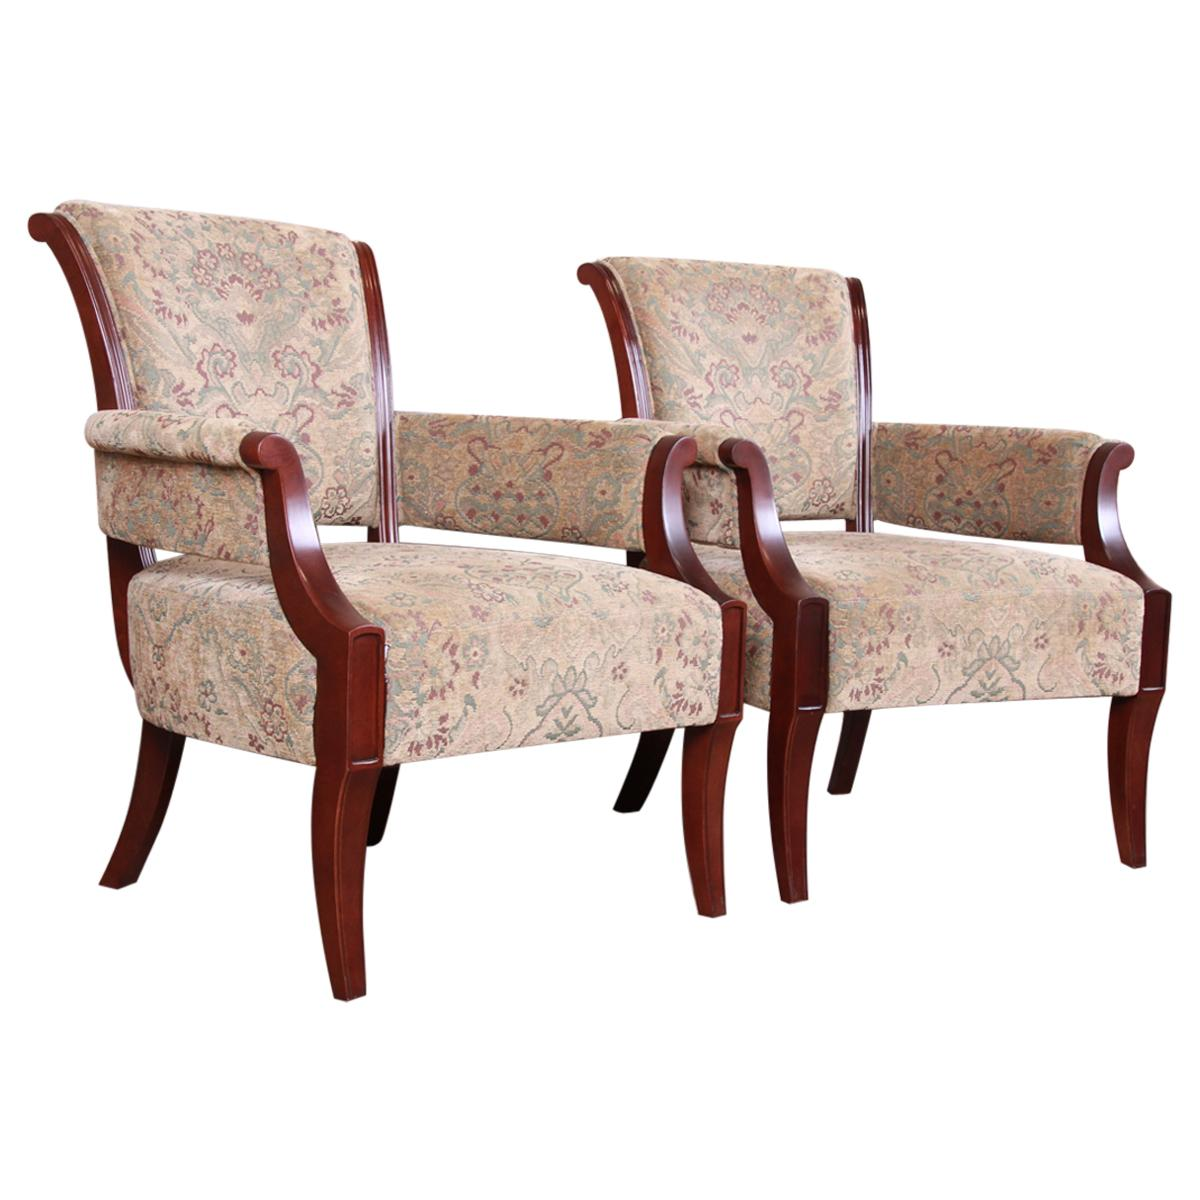 Barbara Barry for Baker Furniture Modern Upholstered Lounge Chairs, Pair